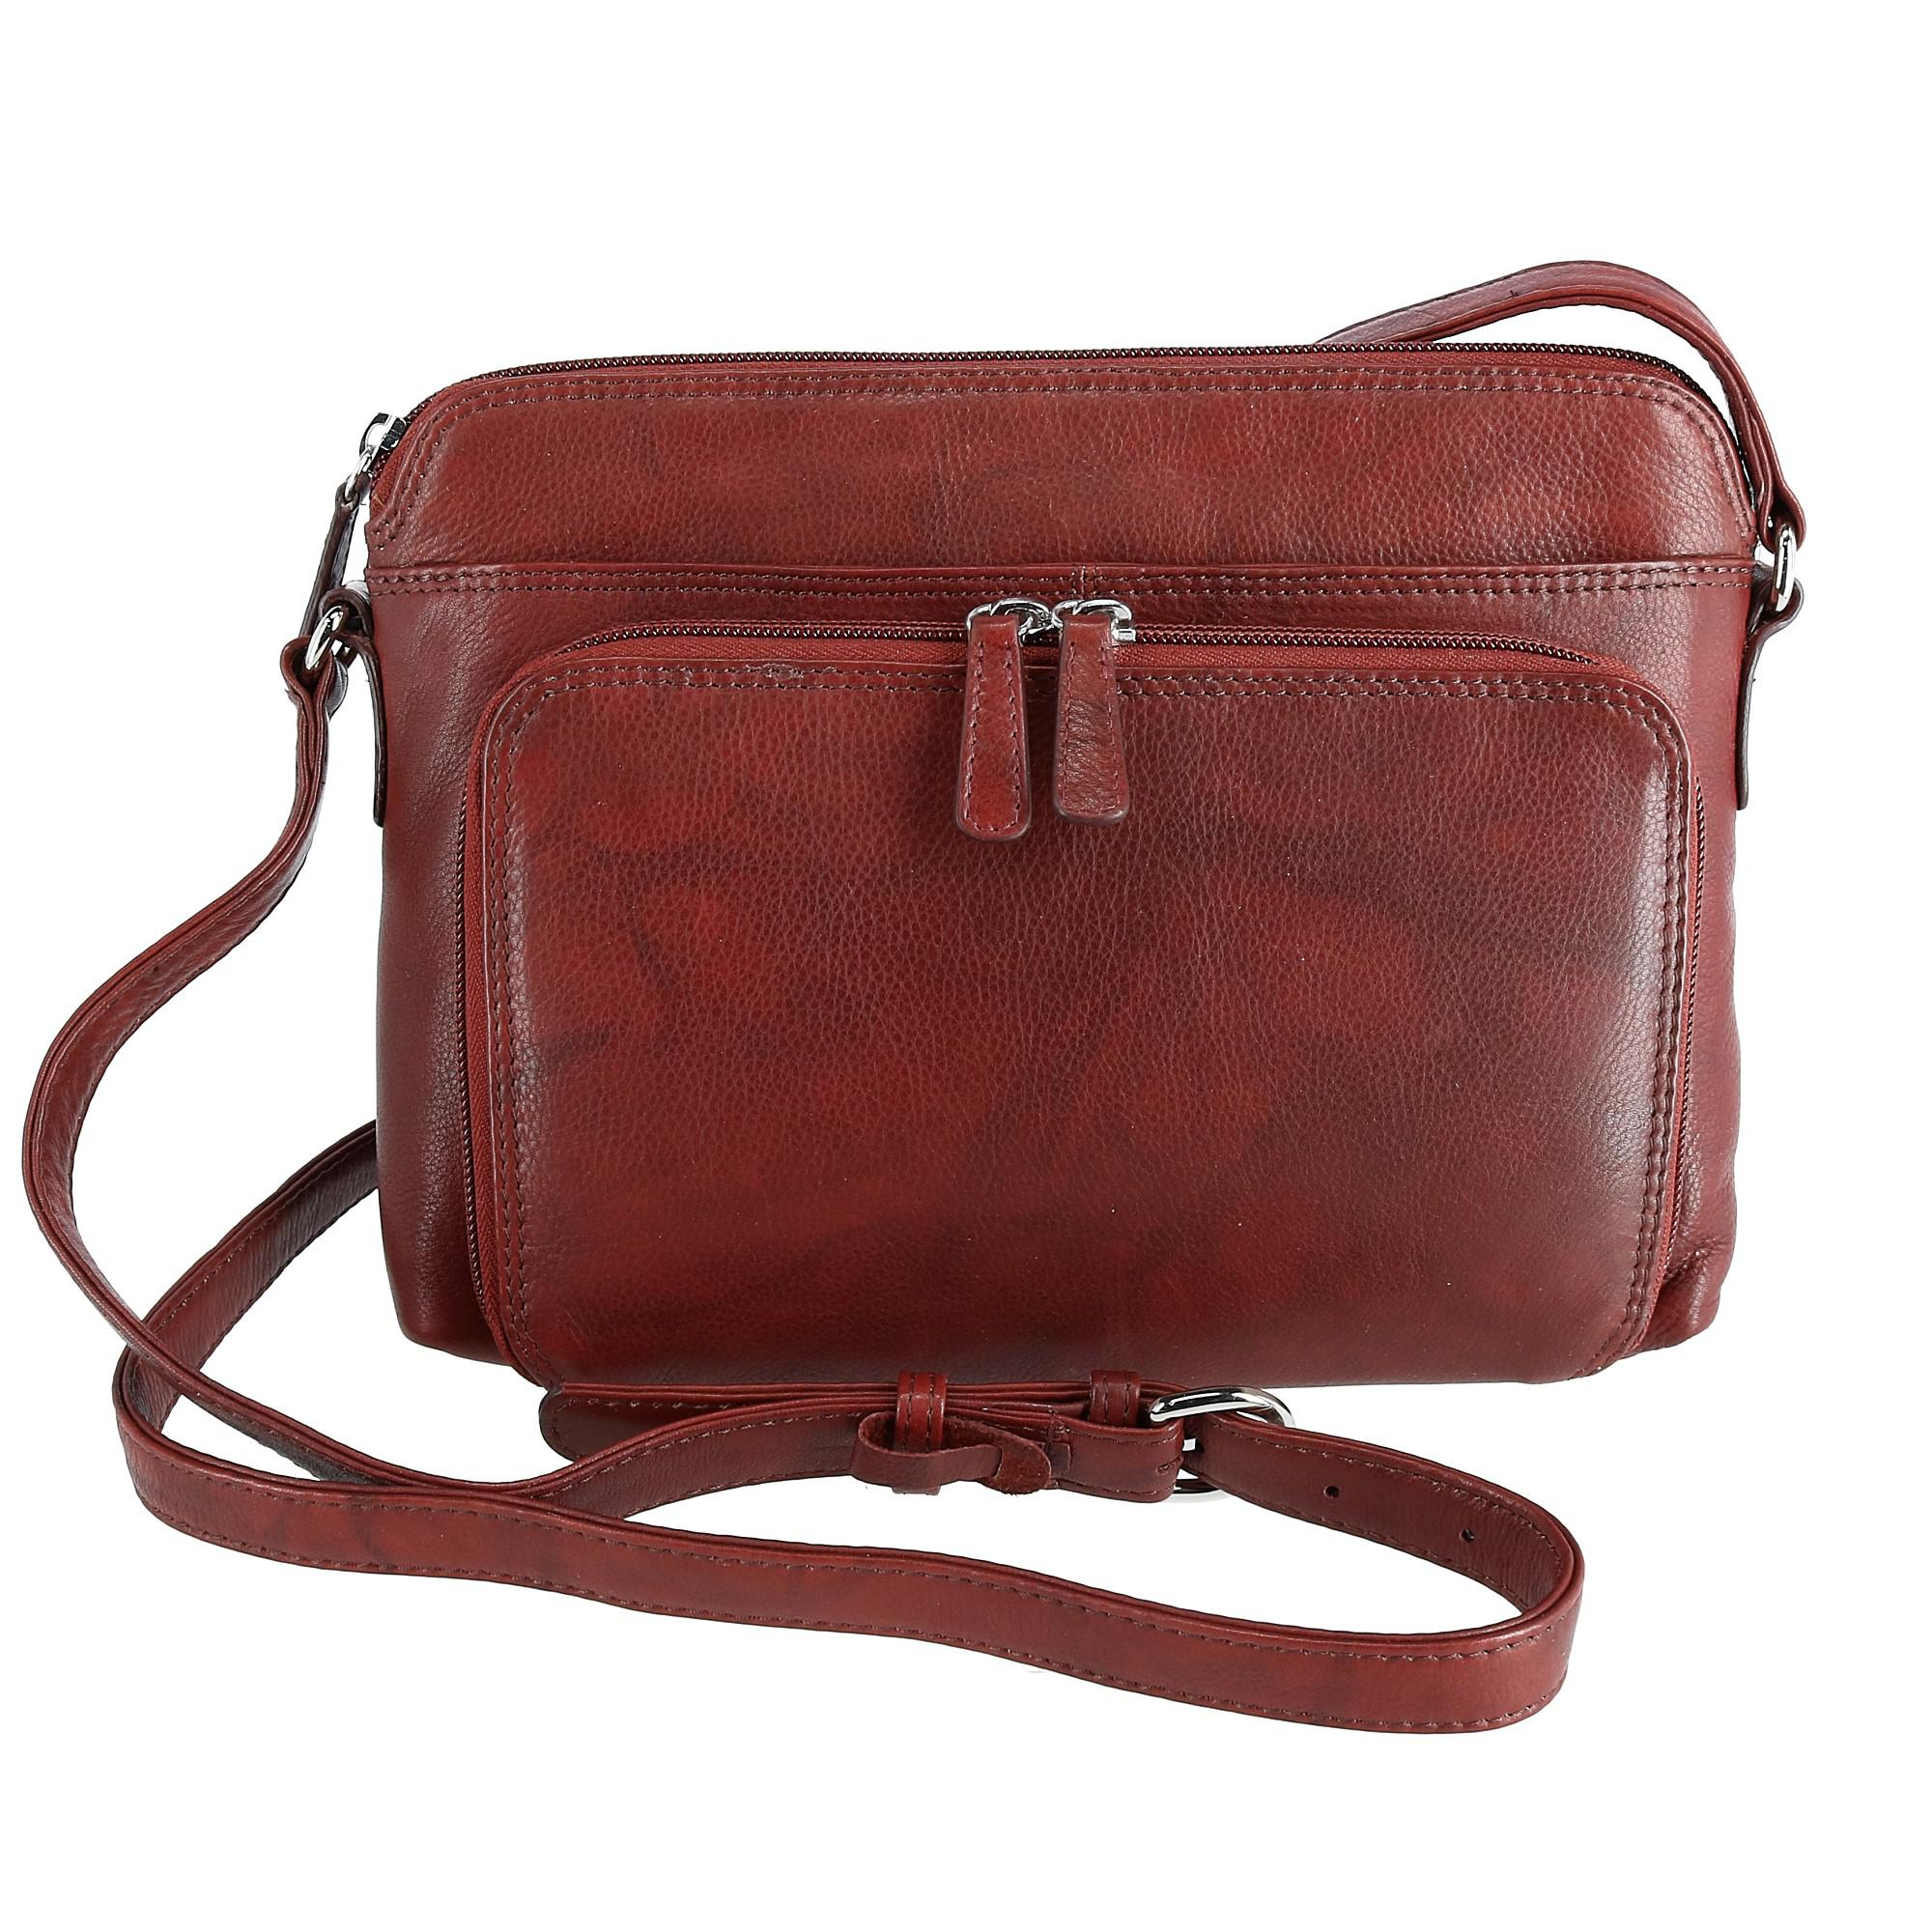 CTM Women's Leather Shoulder Bag Purse with Side Organizer - Redwood (IL-6333-LBR IL-6333) photo